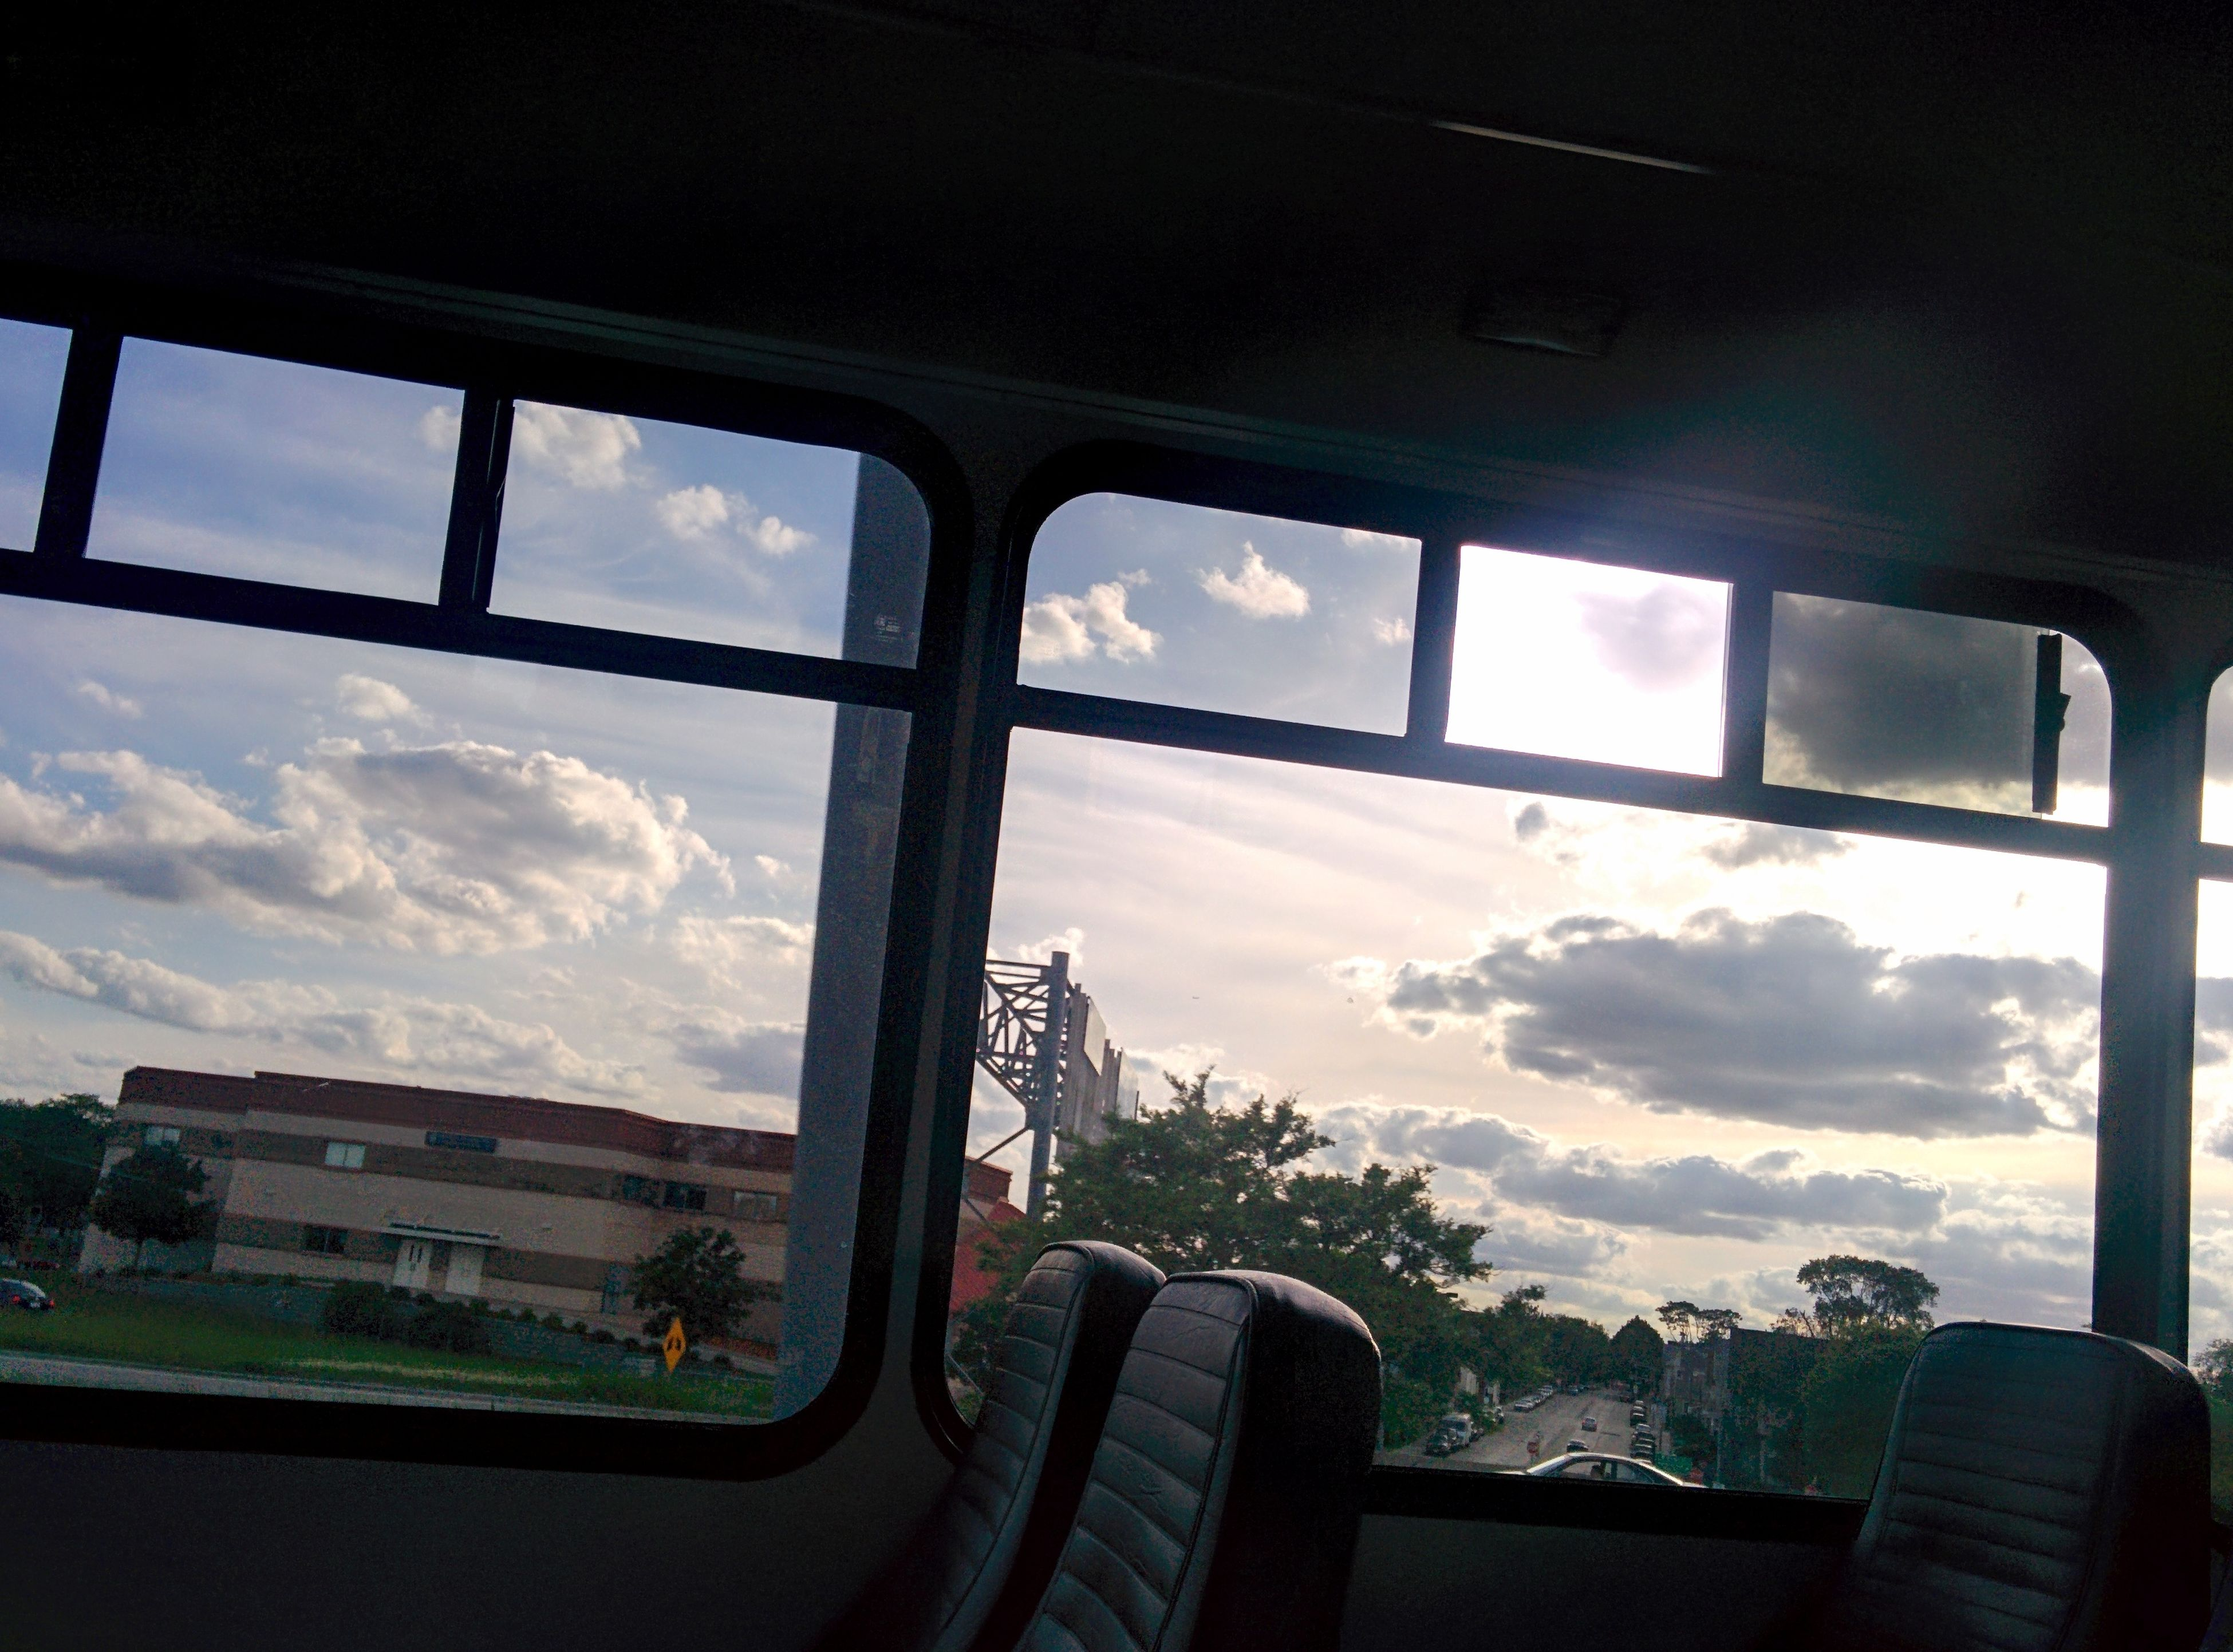 window, transportation, vehicle interior, mode of transport, glass - material, sky, transparent, car, land vehicle, indoors, cloud - sky, travel, airplane, cloud, journey, public transportation, car interior, windshield, part of, day